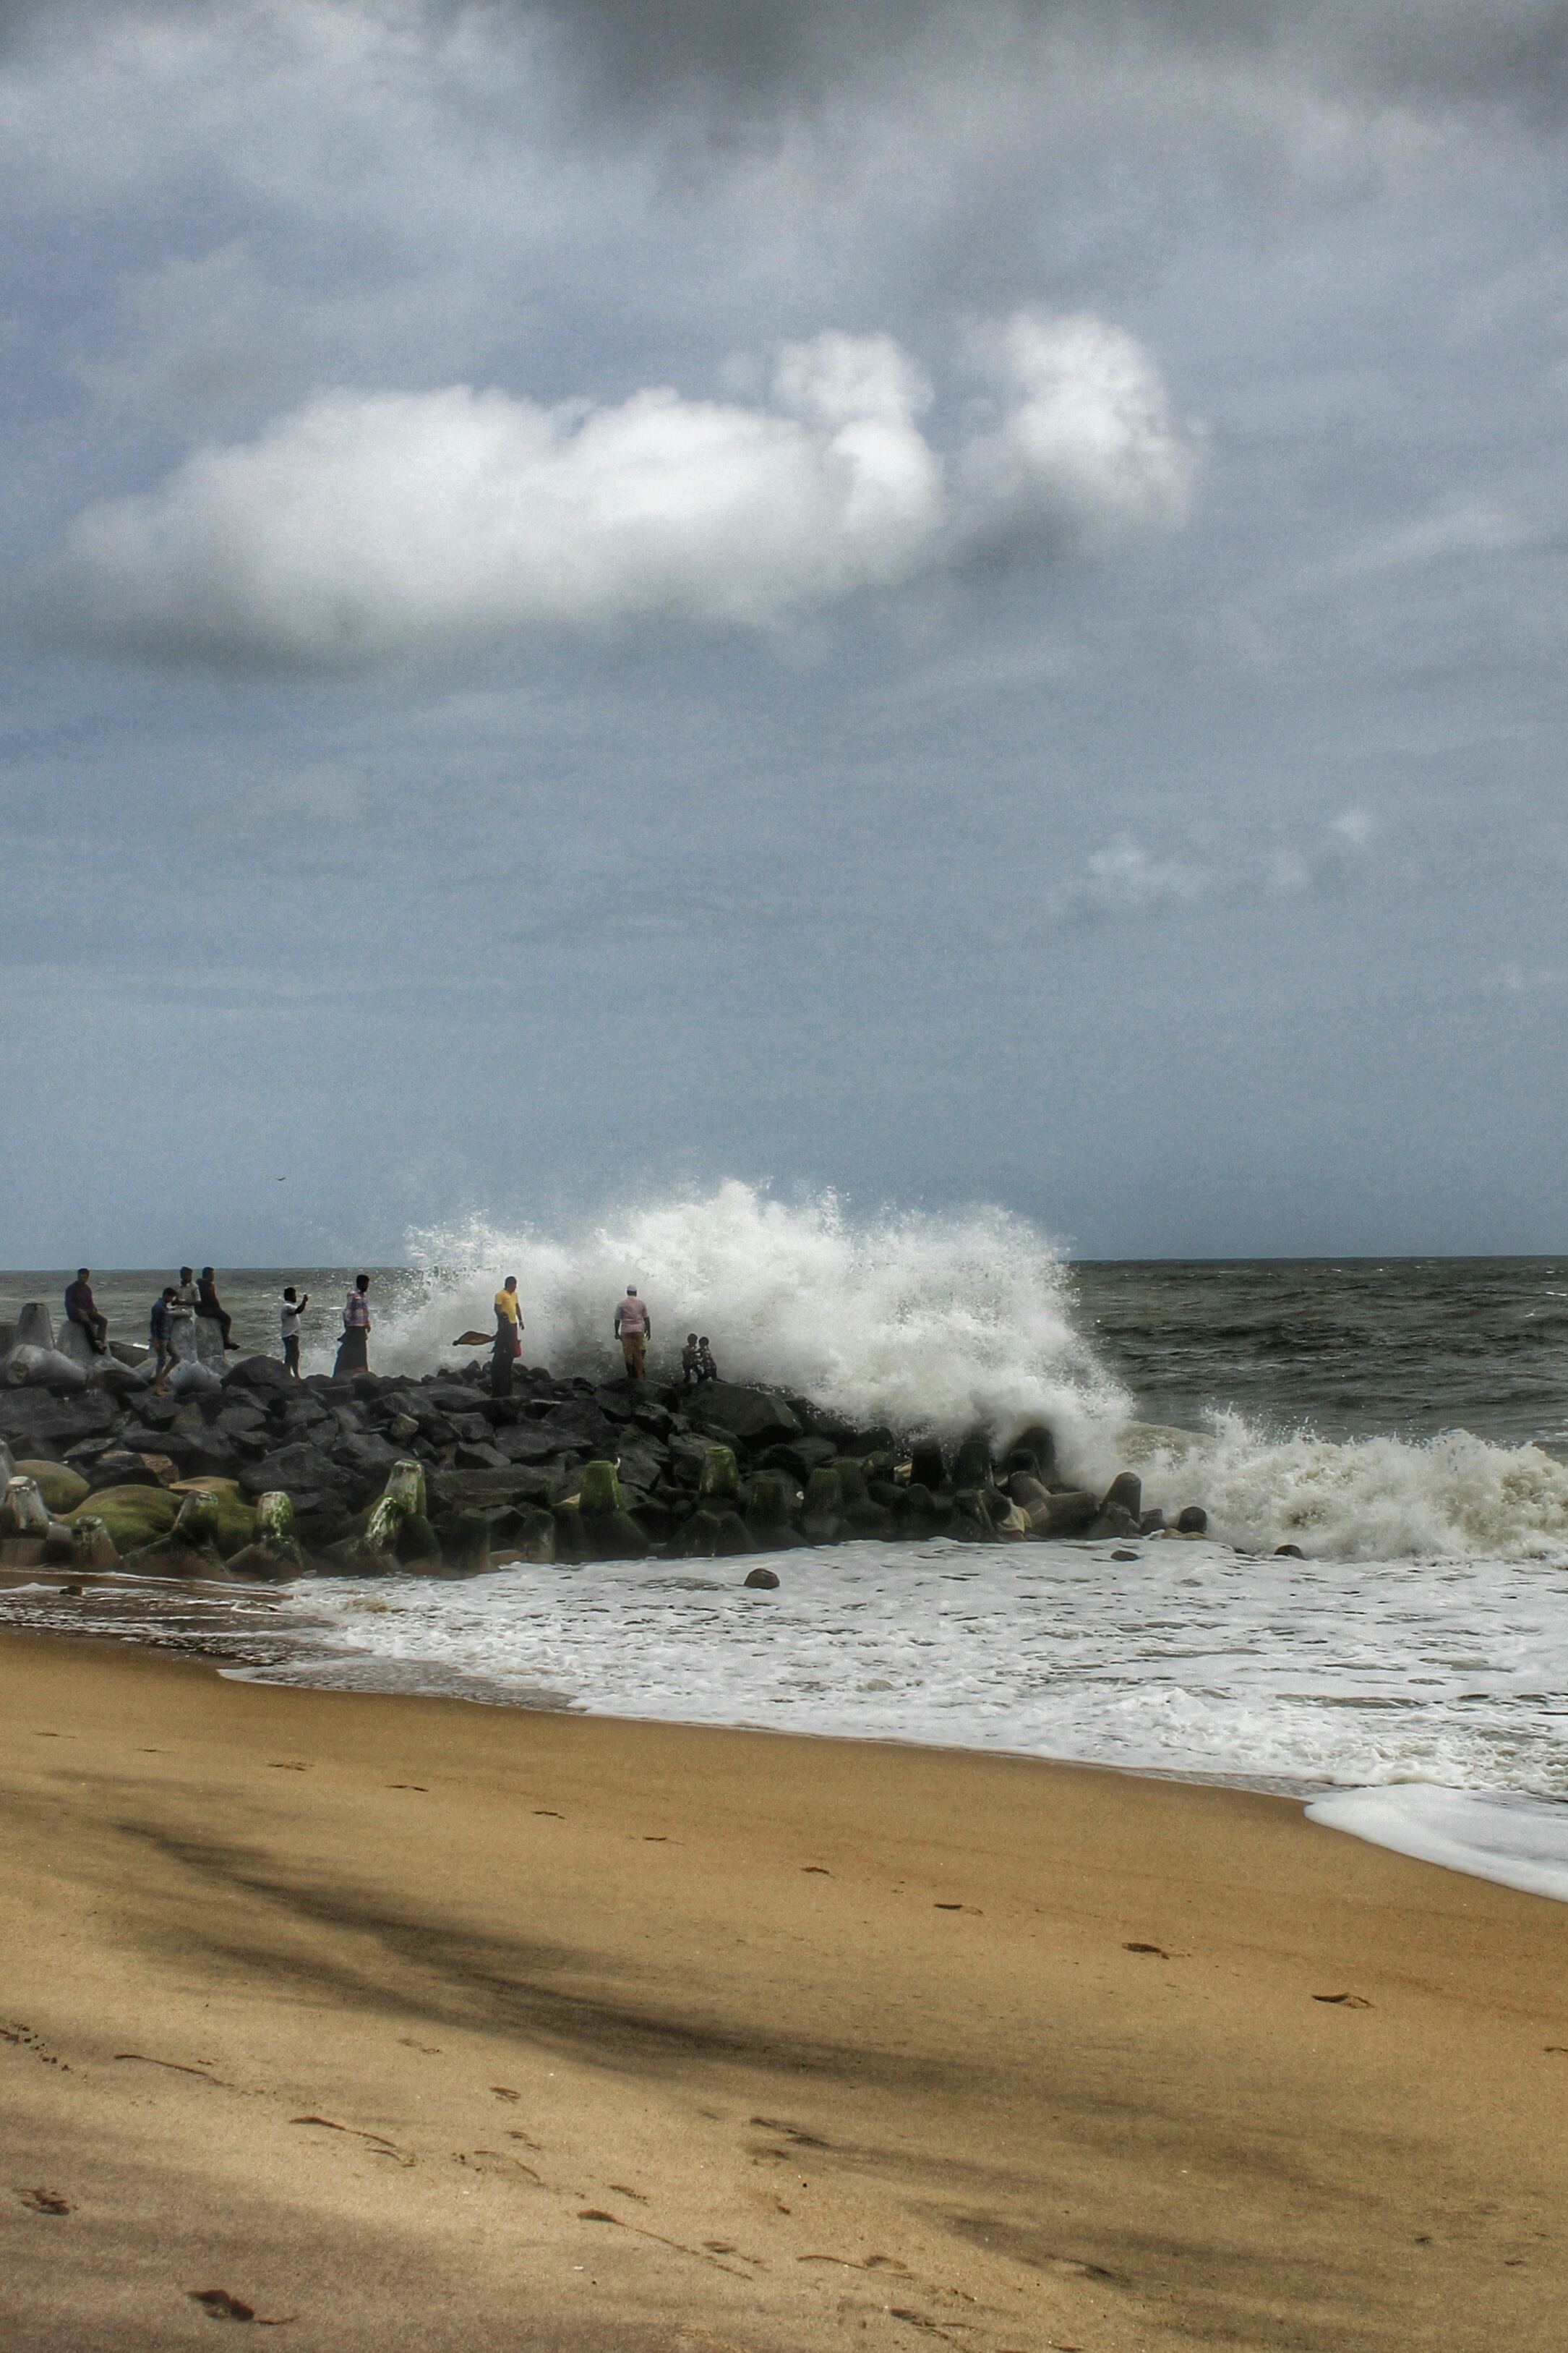 The Hindu features 'Karnataka's coast not to compete with Goa and Kerala'